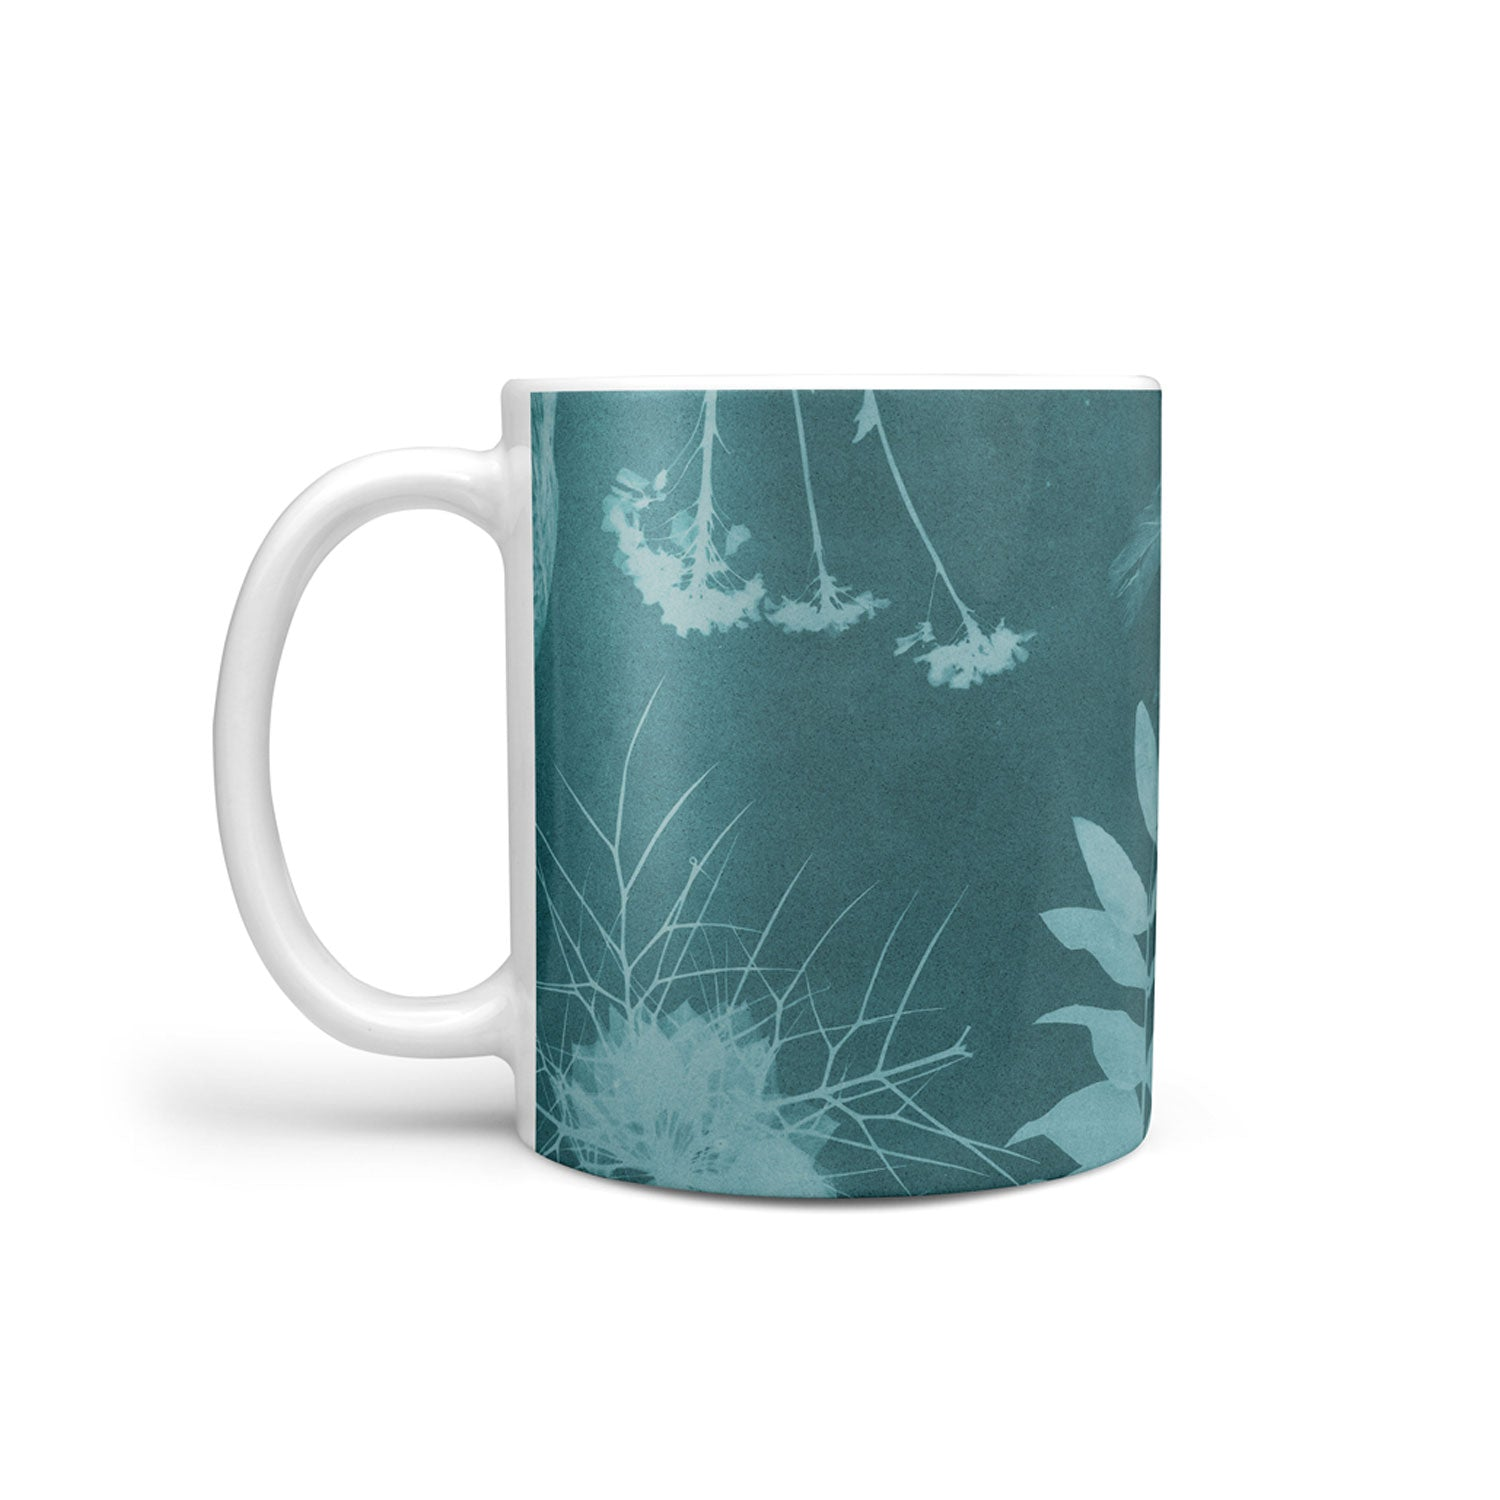 teal mug with botanical design